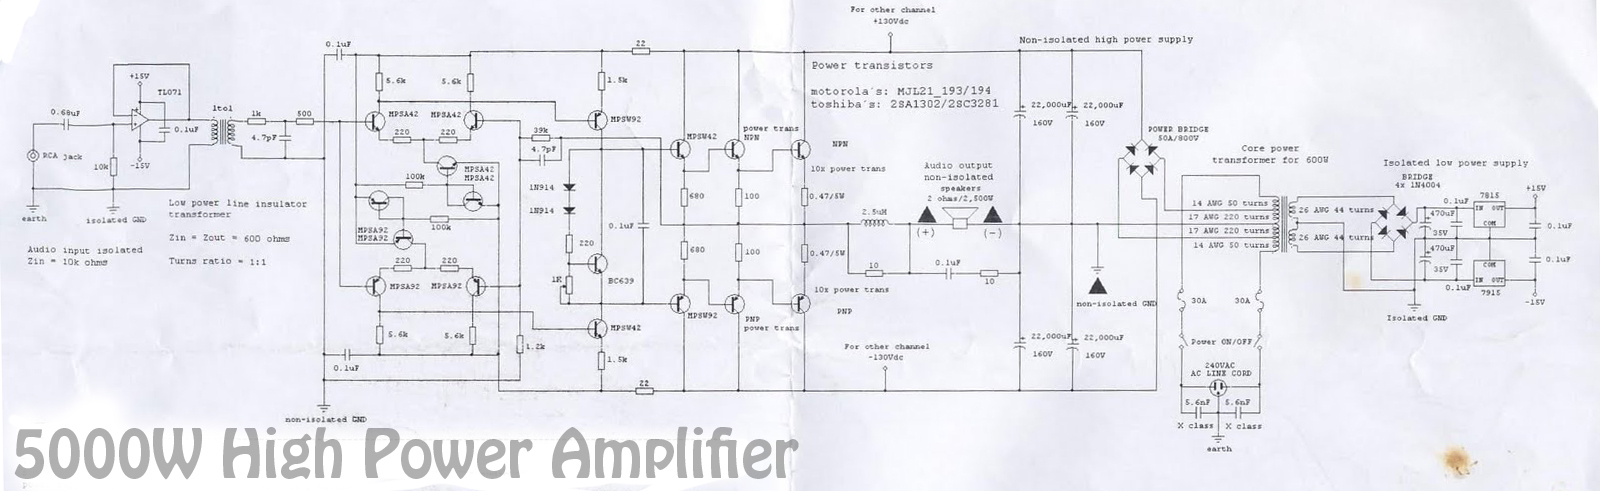 5000 watts high power amplifier schematic subwoofer bass amplifier rh subwooferbass amplifiercircuit blogspot com Voltage Amplifier Schematic Tube Amplifier Schematic Diagrams